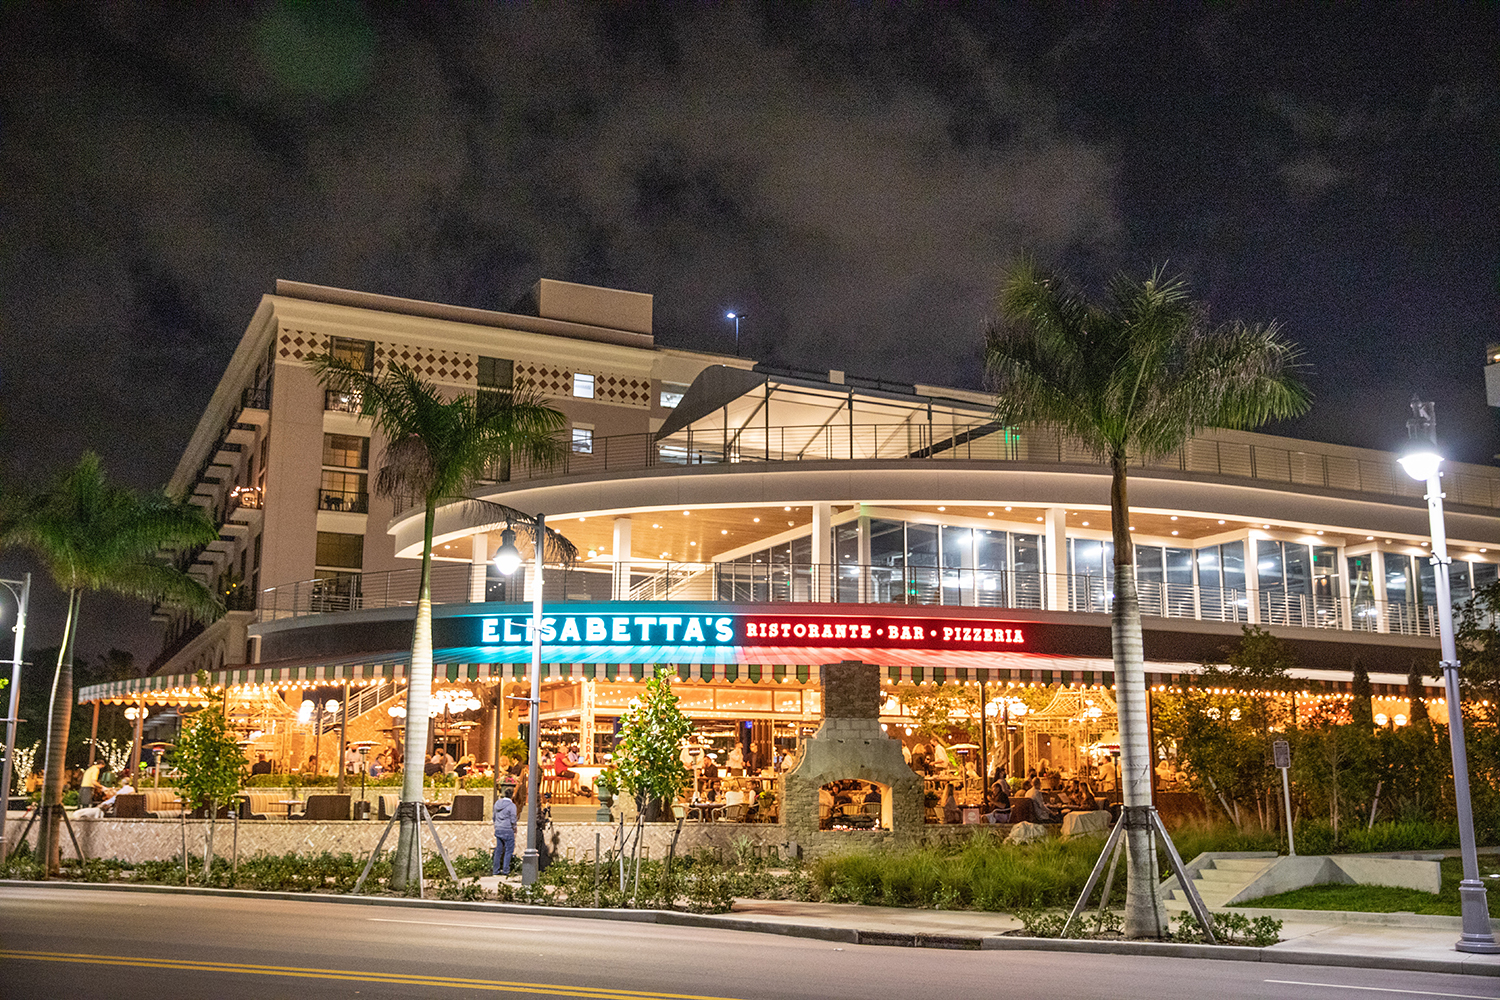 Elisabetta's West Palm Beach